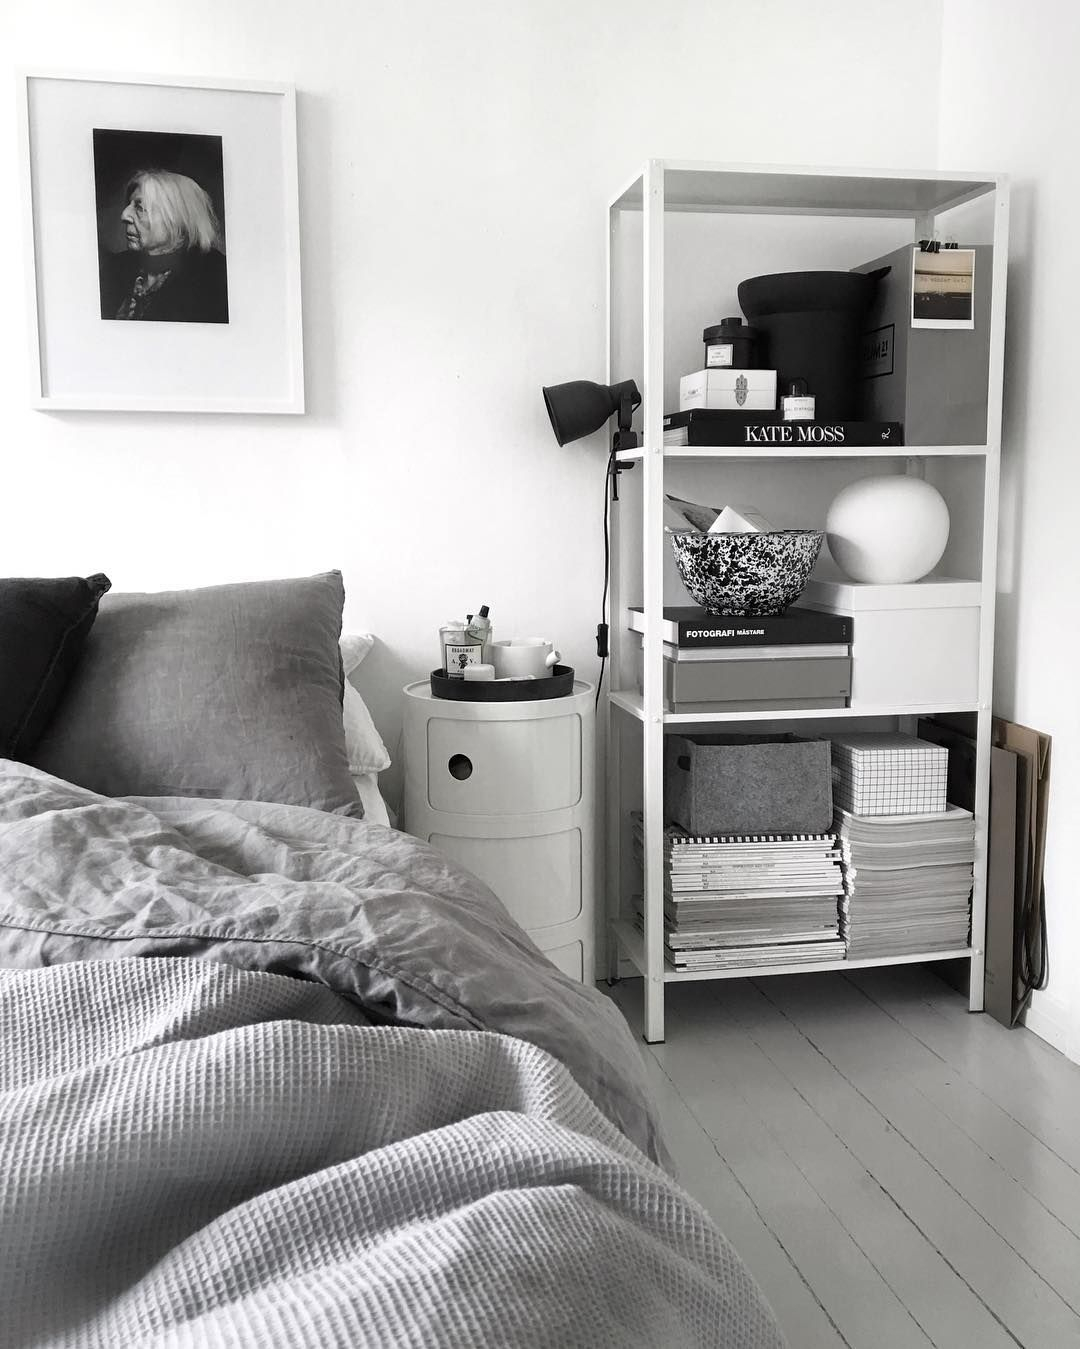 Chambre Adulte Ikea Étonnant Ikea Hyllis Metallic Shelf In Bedroom by 49kvadrat